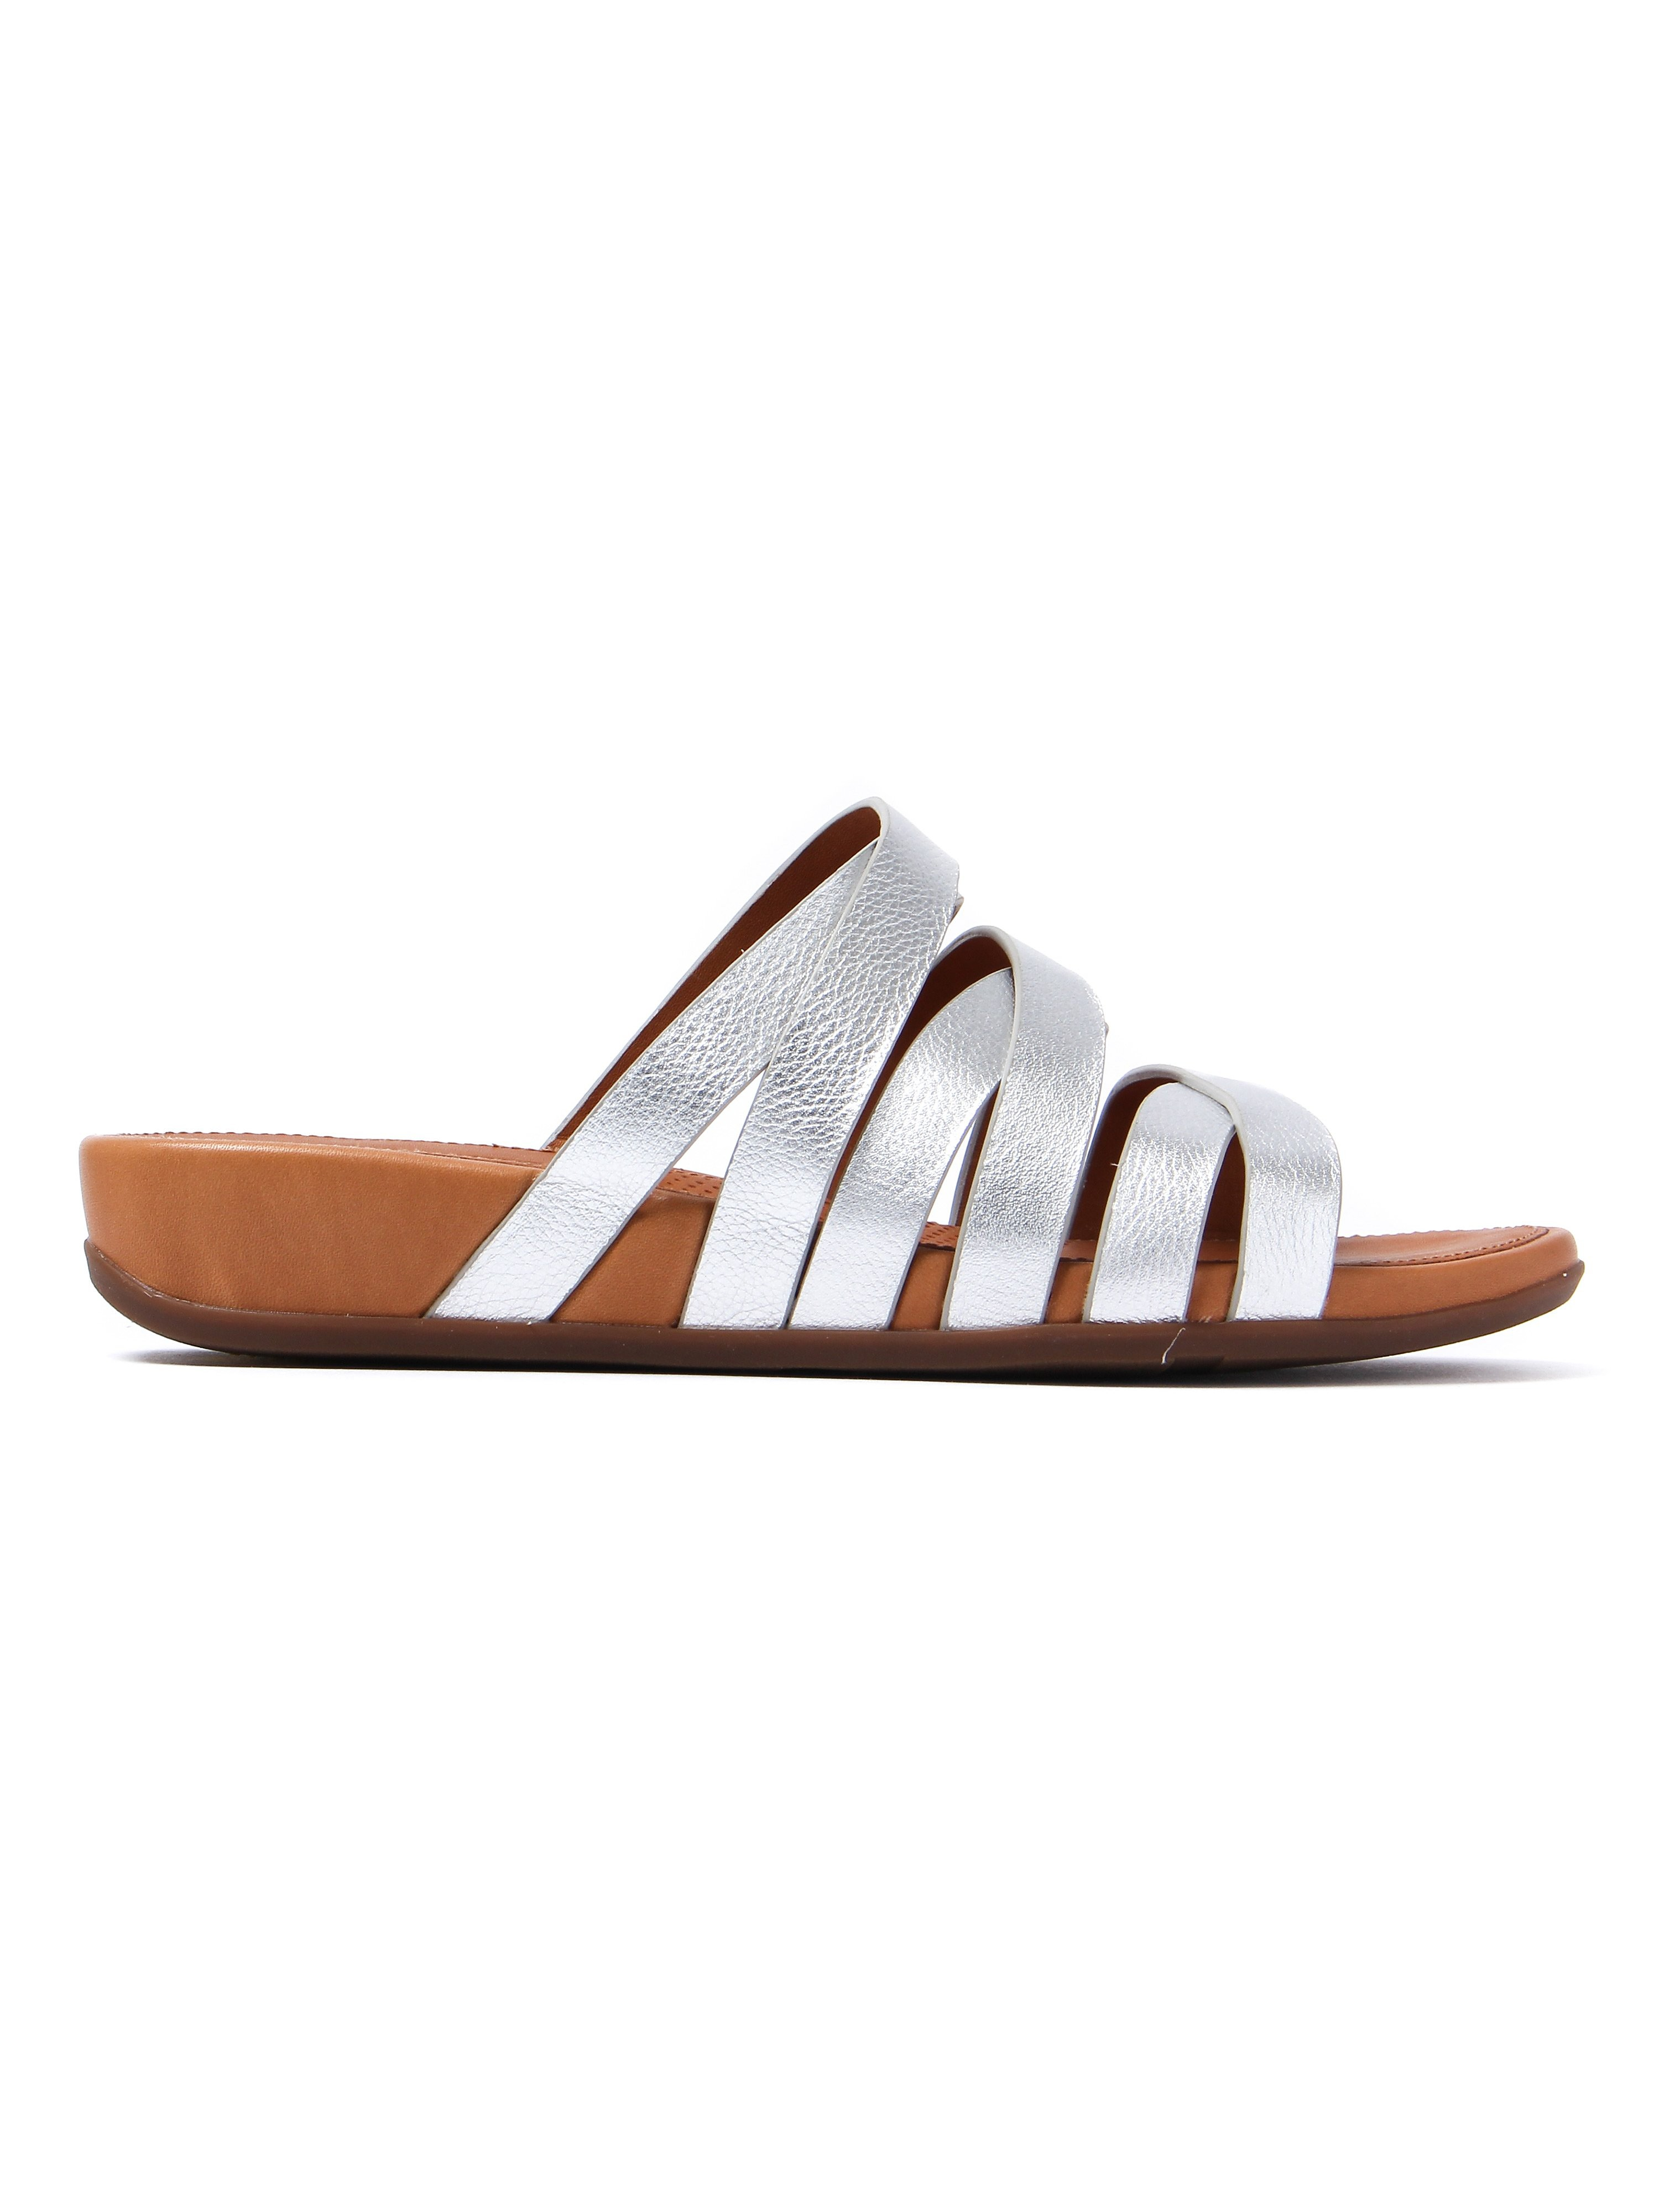 FitFlop Women's Lumy Leather Slide Sandals - Silver